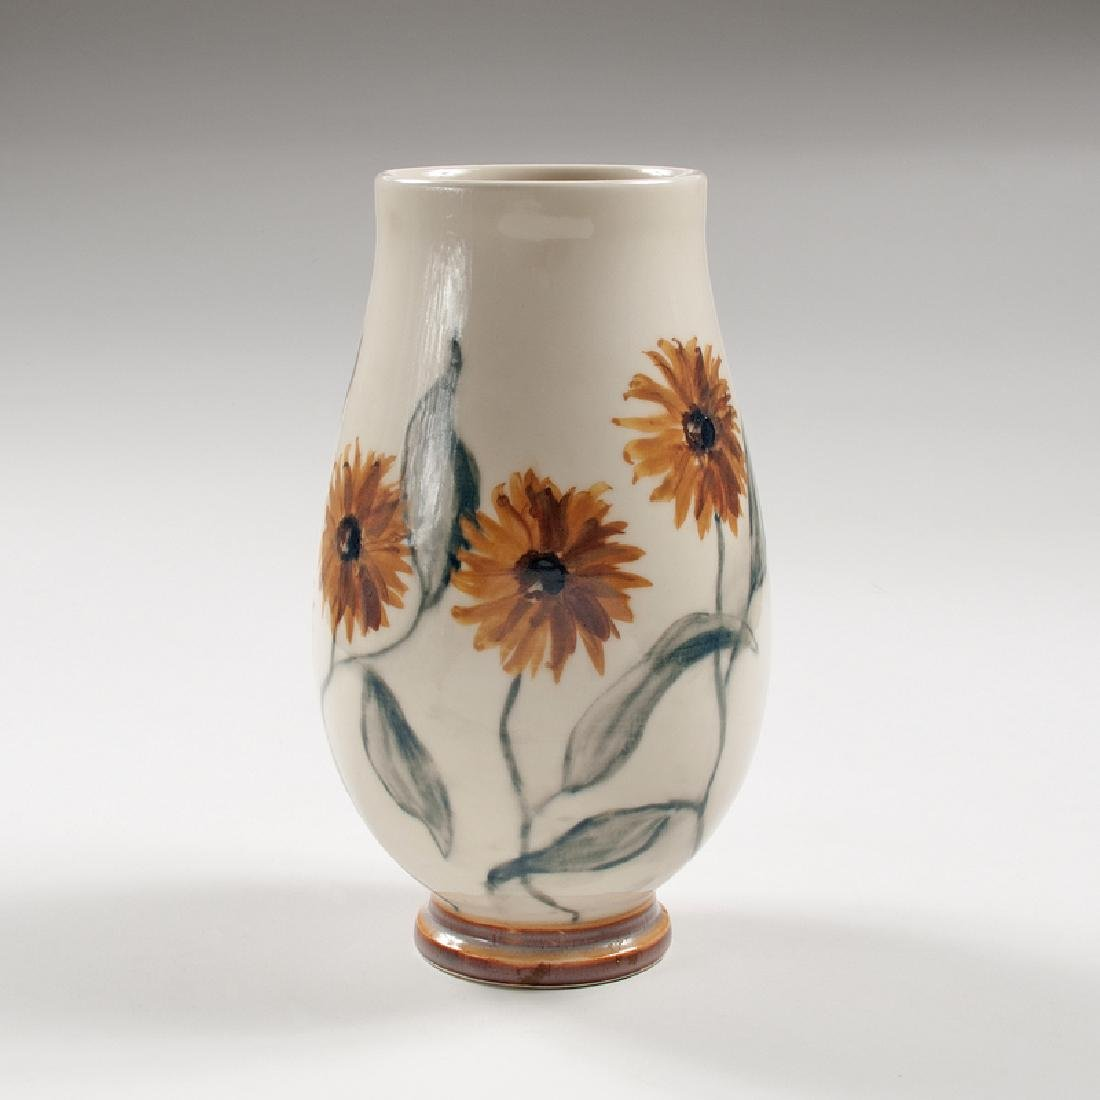 Rookwood Vase by Jens Jensen